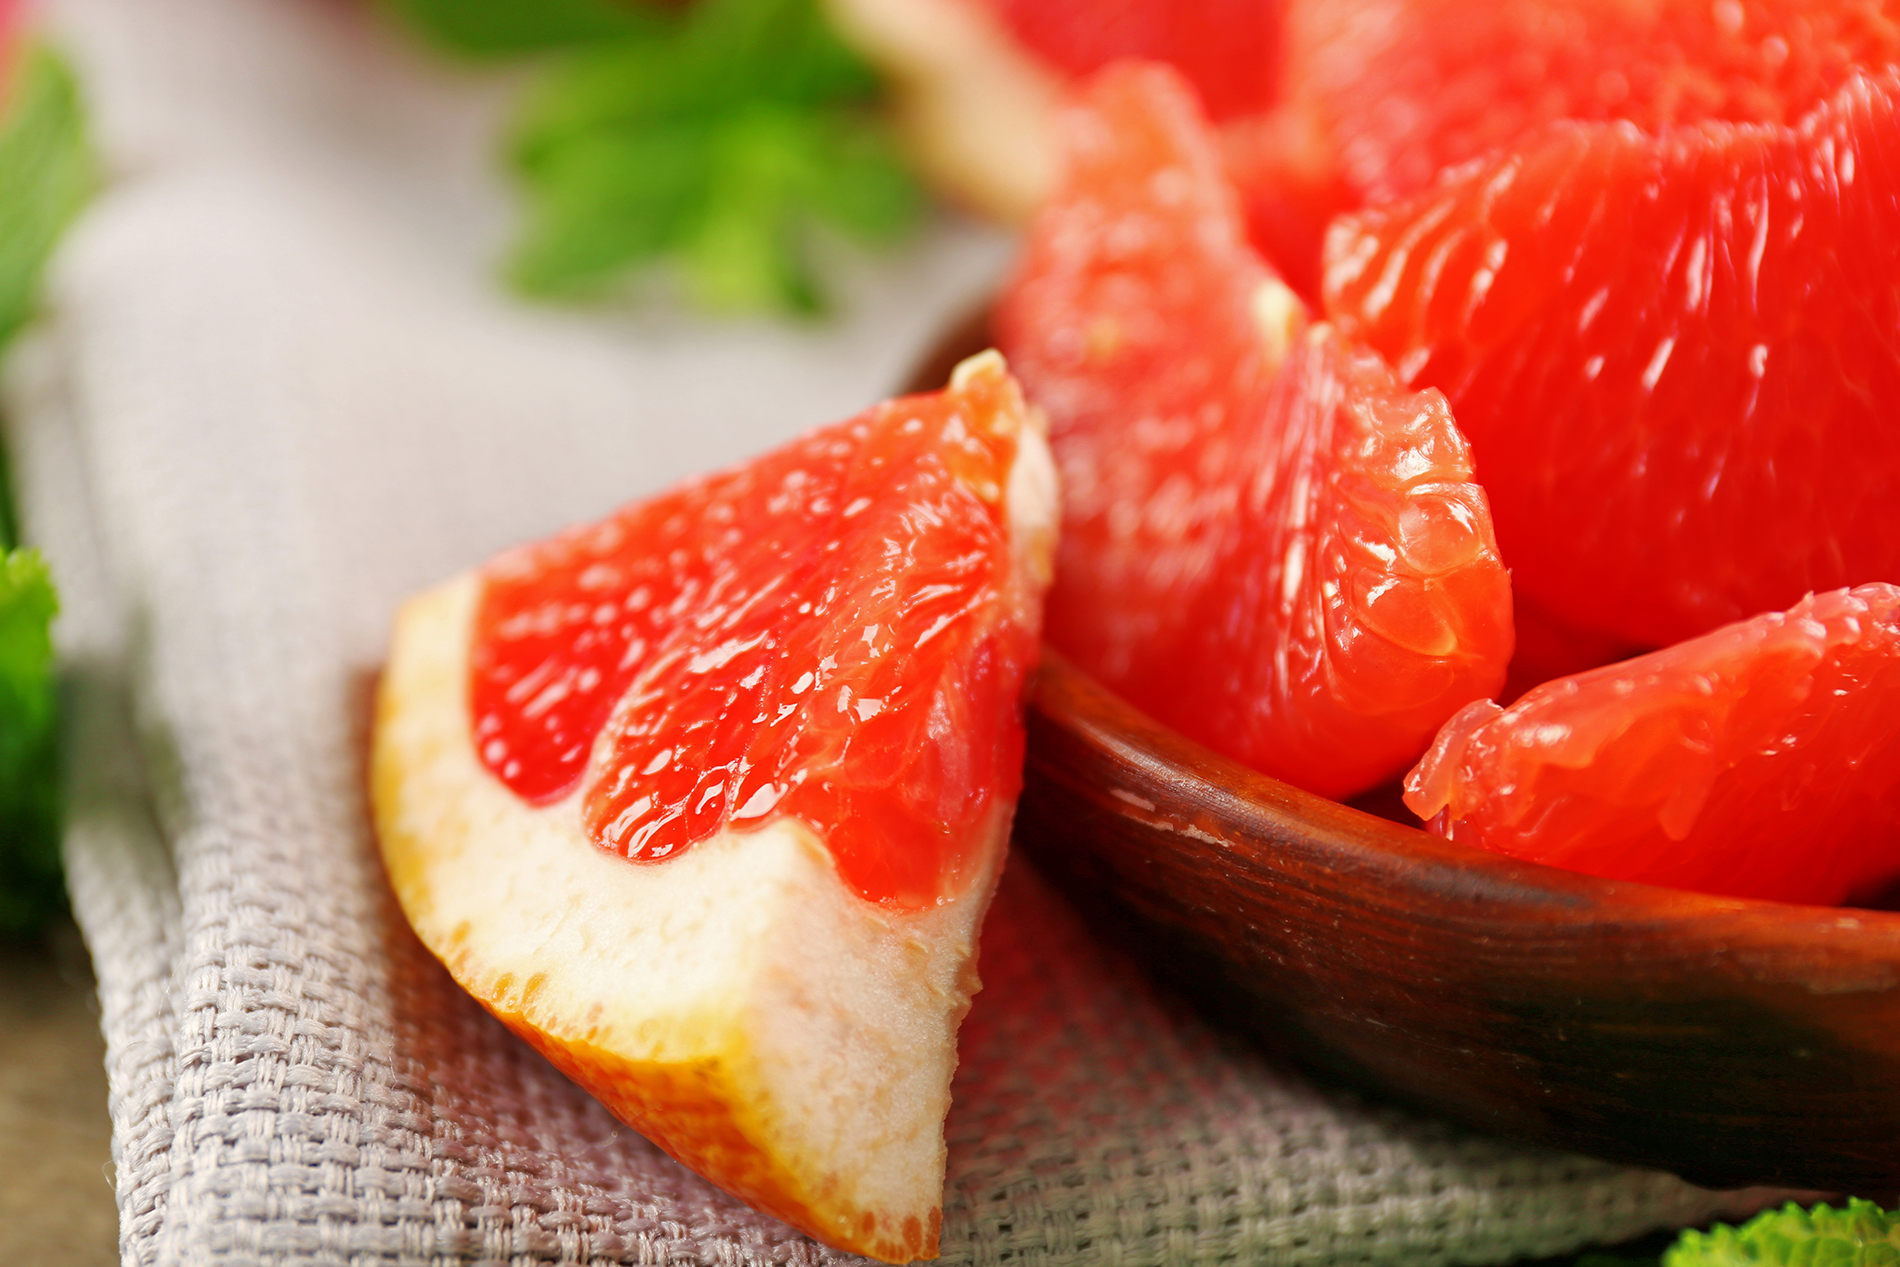 Red pomelo 53841